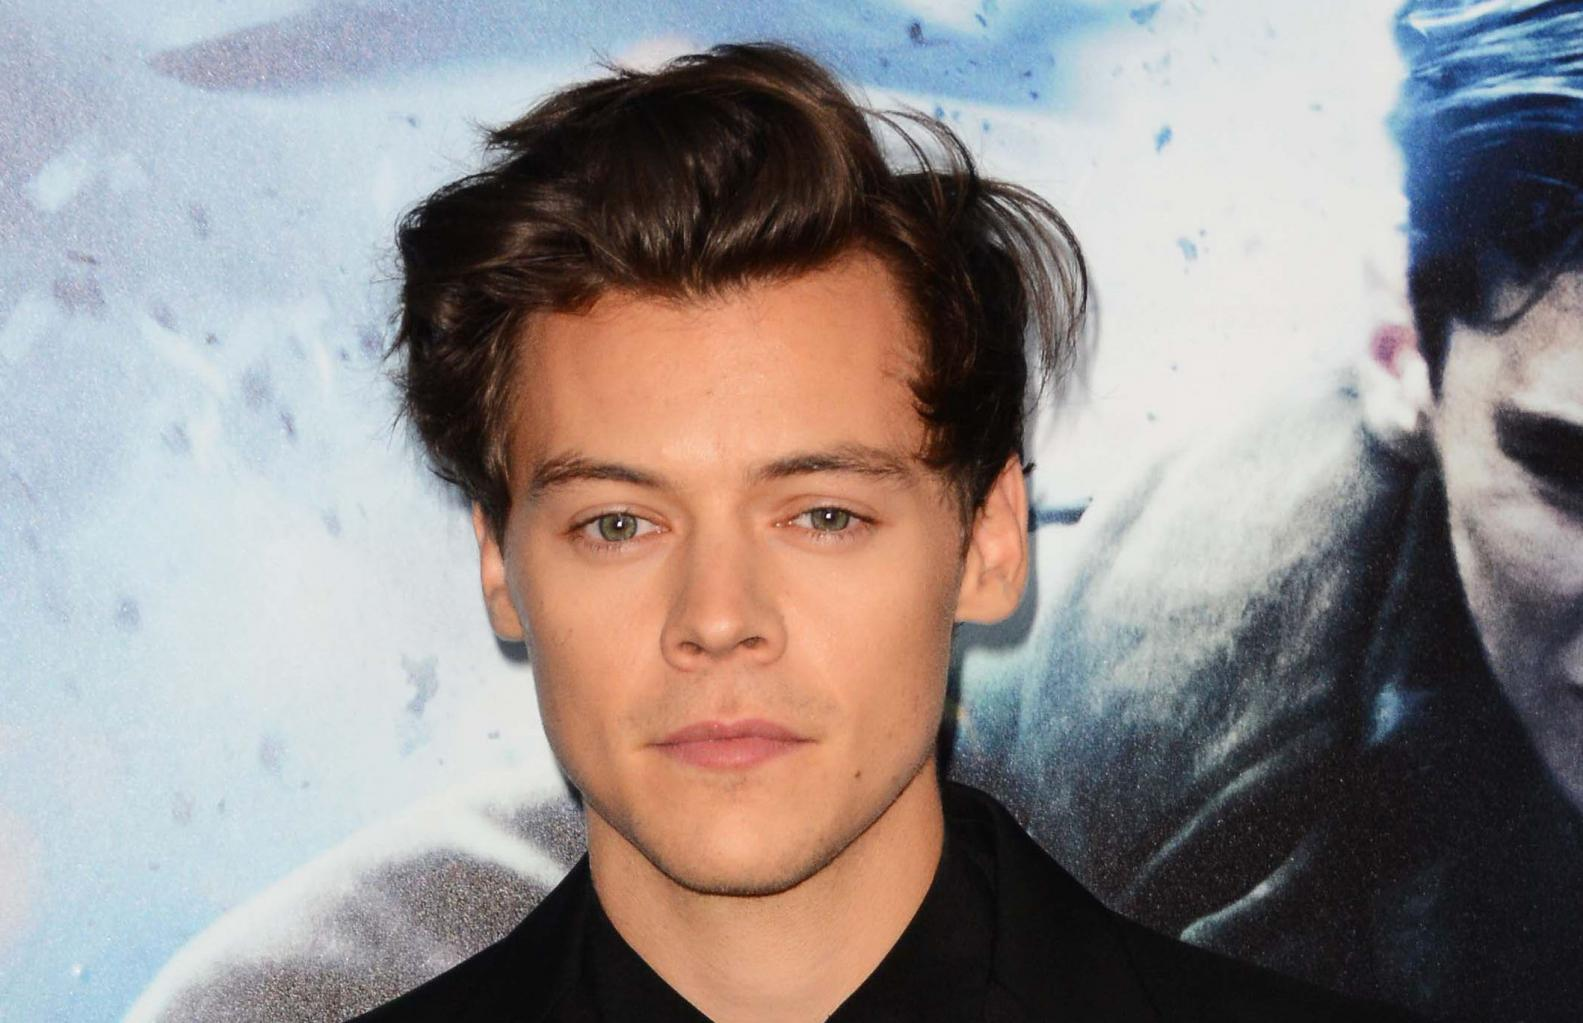 Science Confirms Harry Styles Is Handsome (But Not As Handsome As George Clooney)